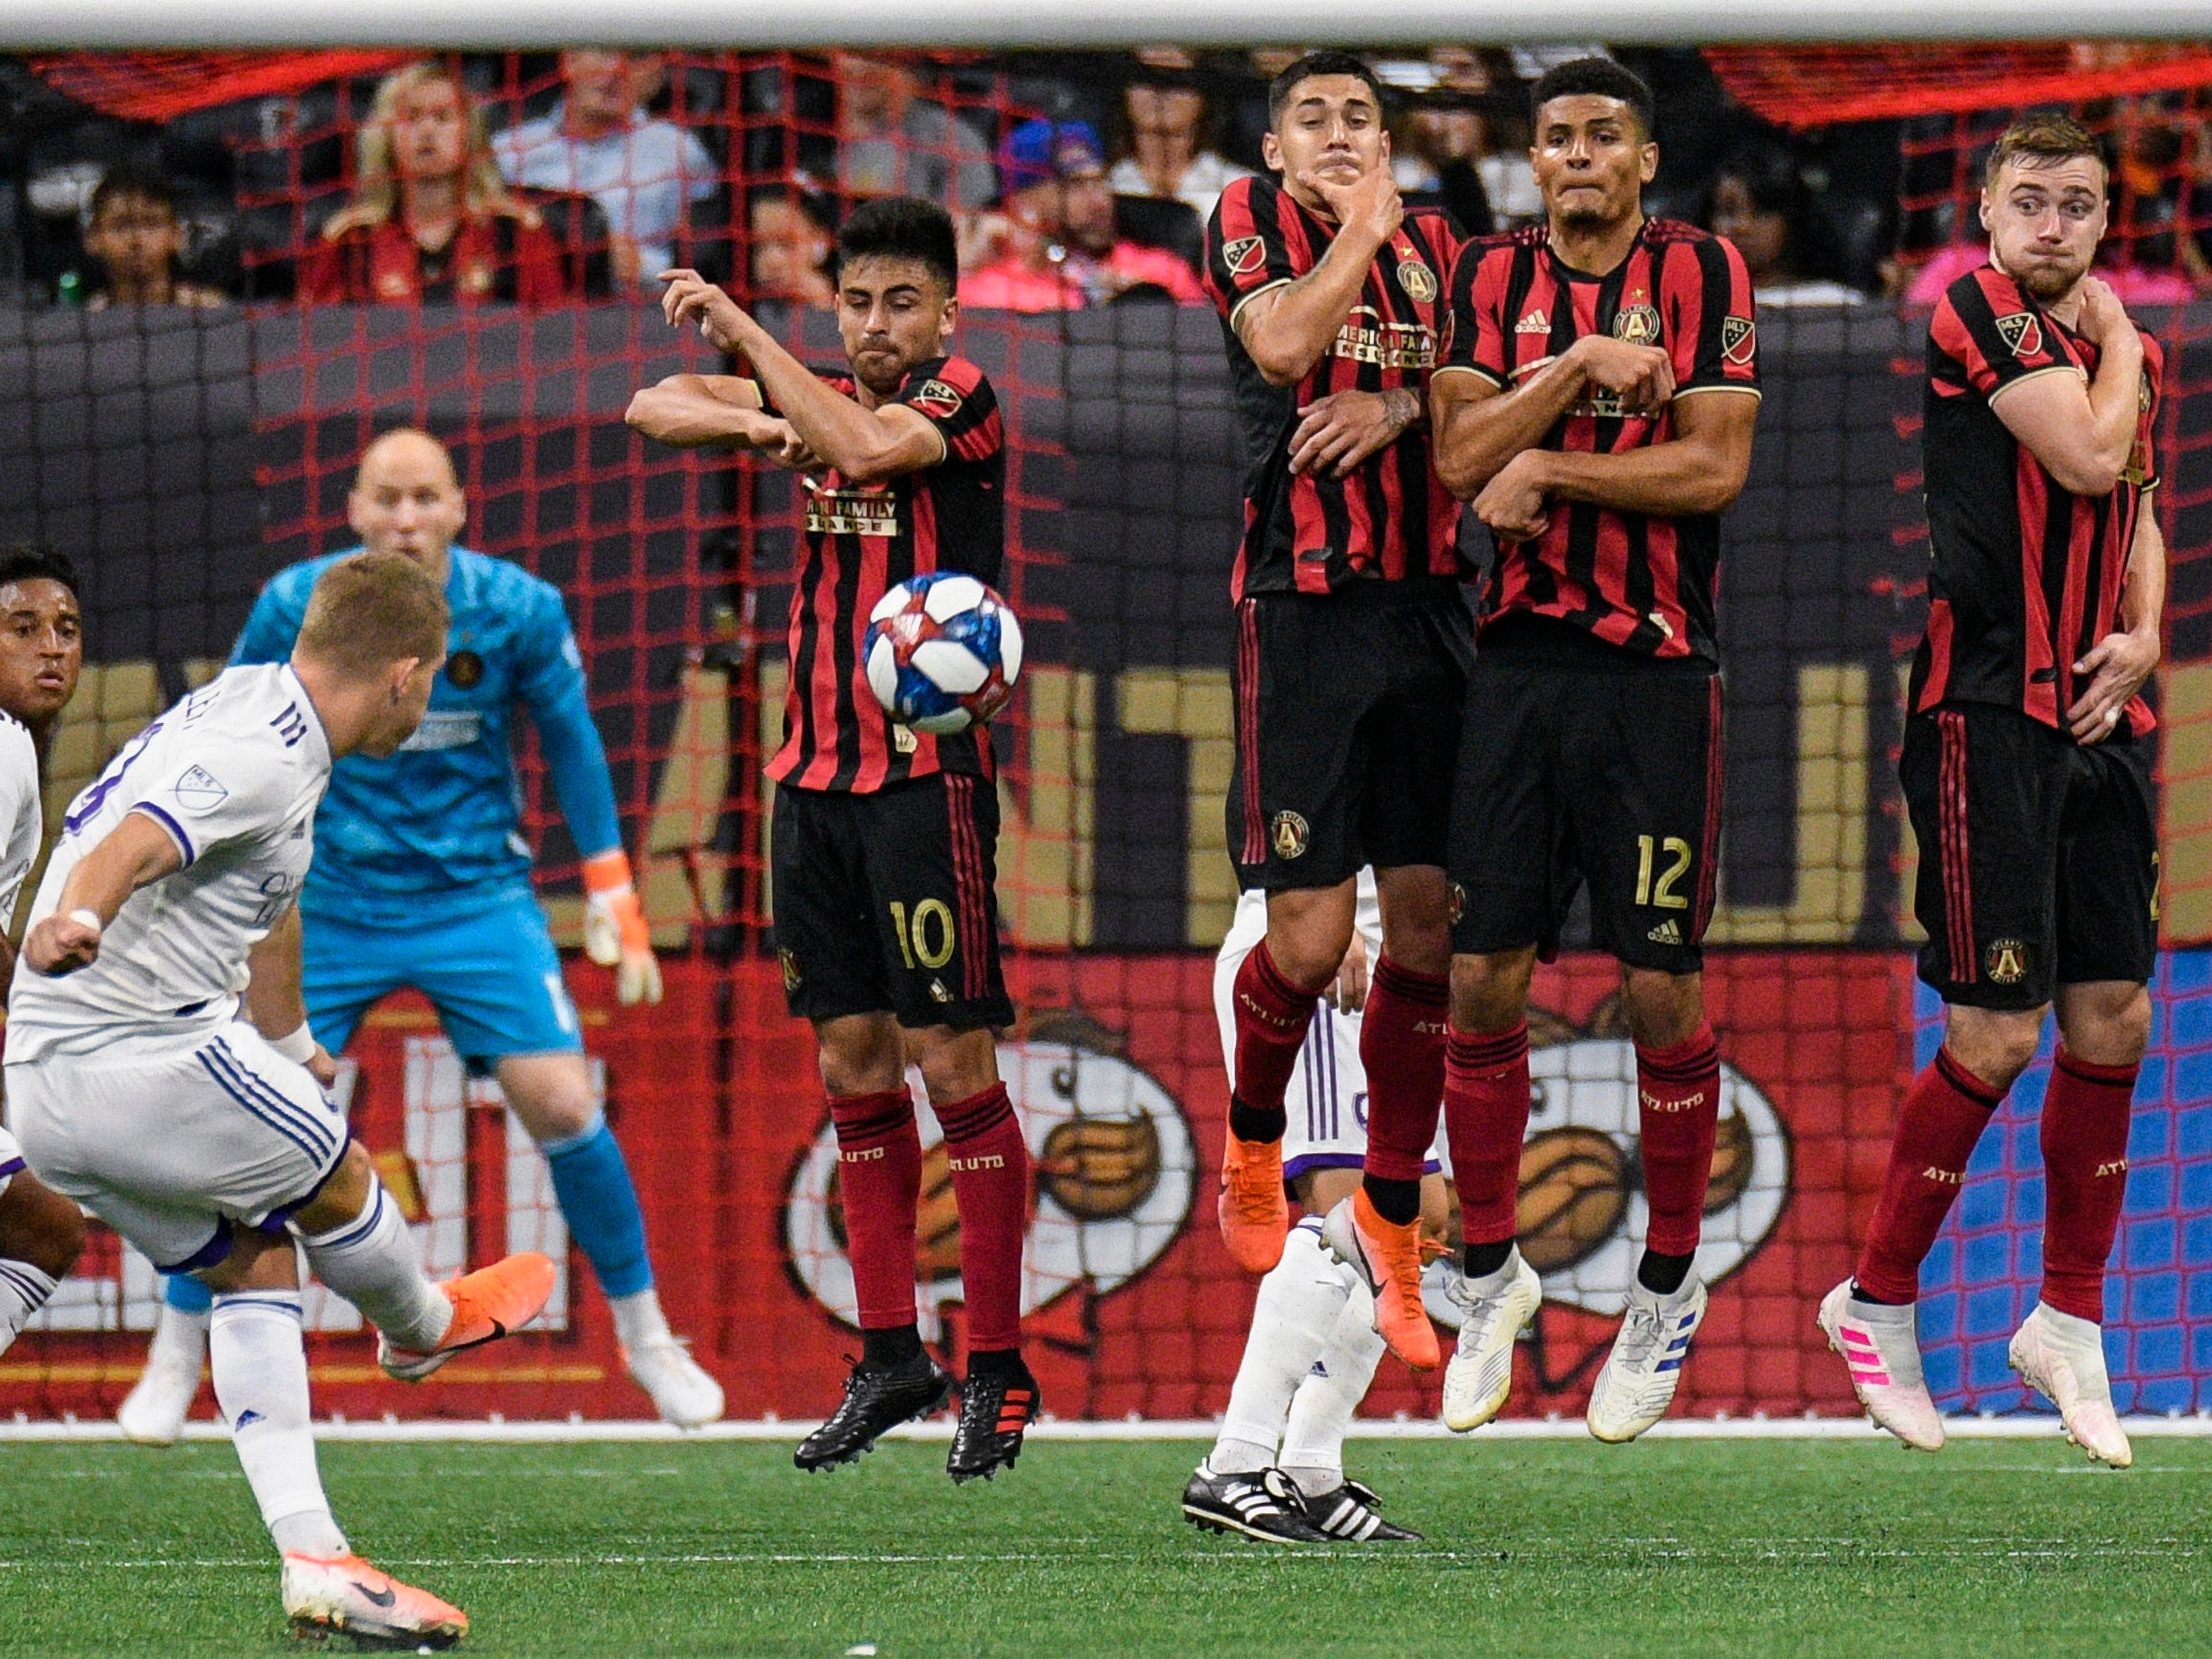 May 12: Atlanta United players try to block a penalty kick by Orlando City forward Chris Mueller during the second half at Mercedes-Benz Stadium. Atlanta won the game, 1-0.